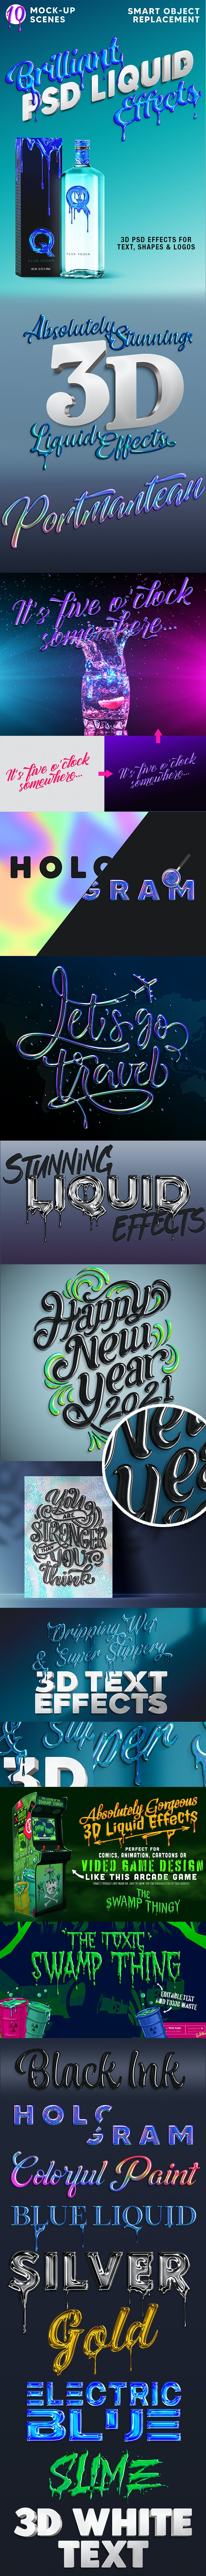 Brilliant 3D Liquid Effects - Text Effects Styles